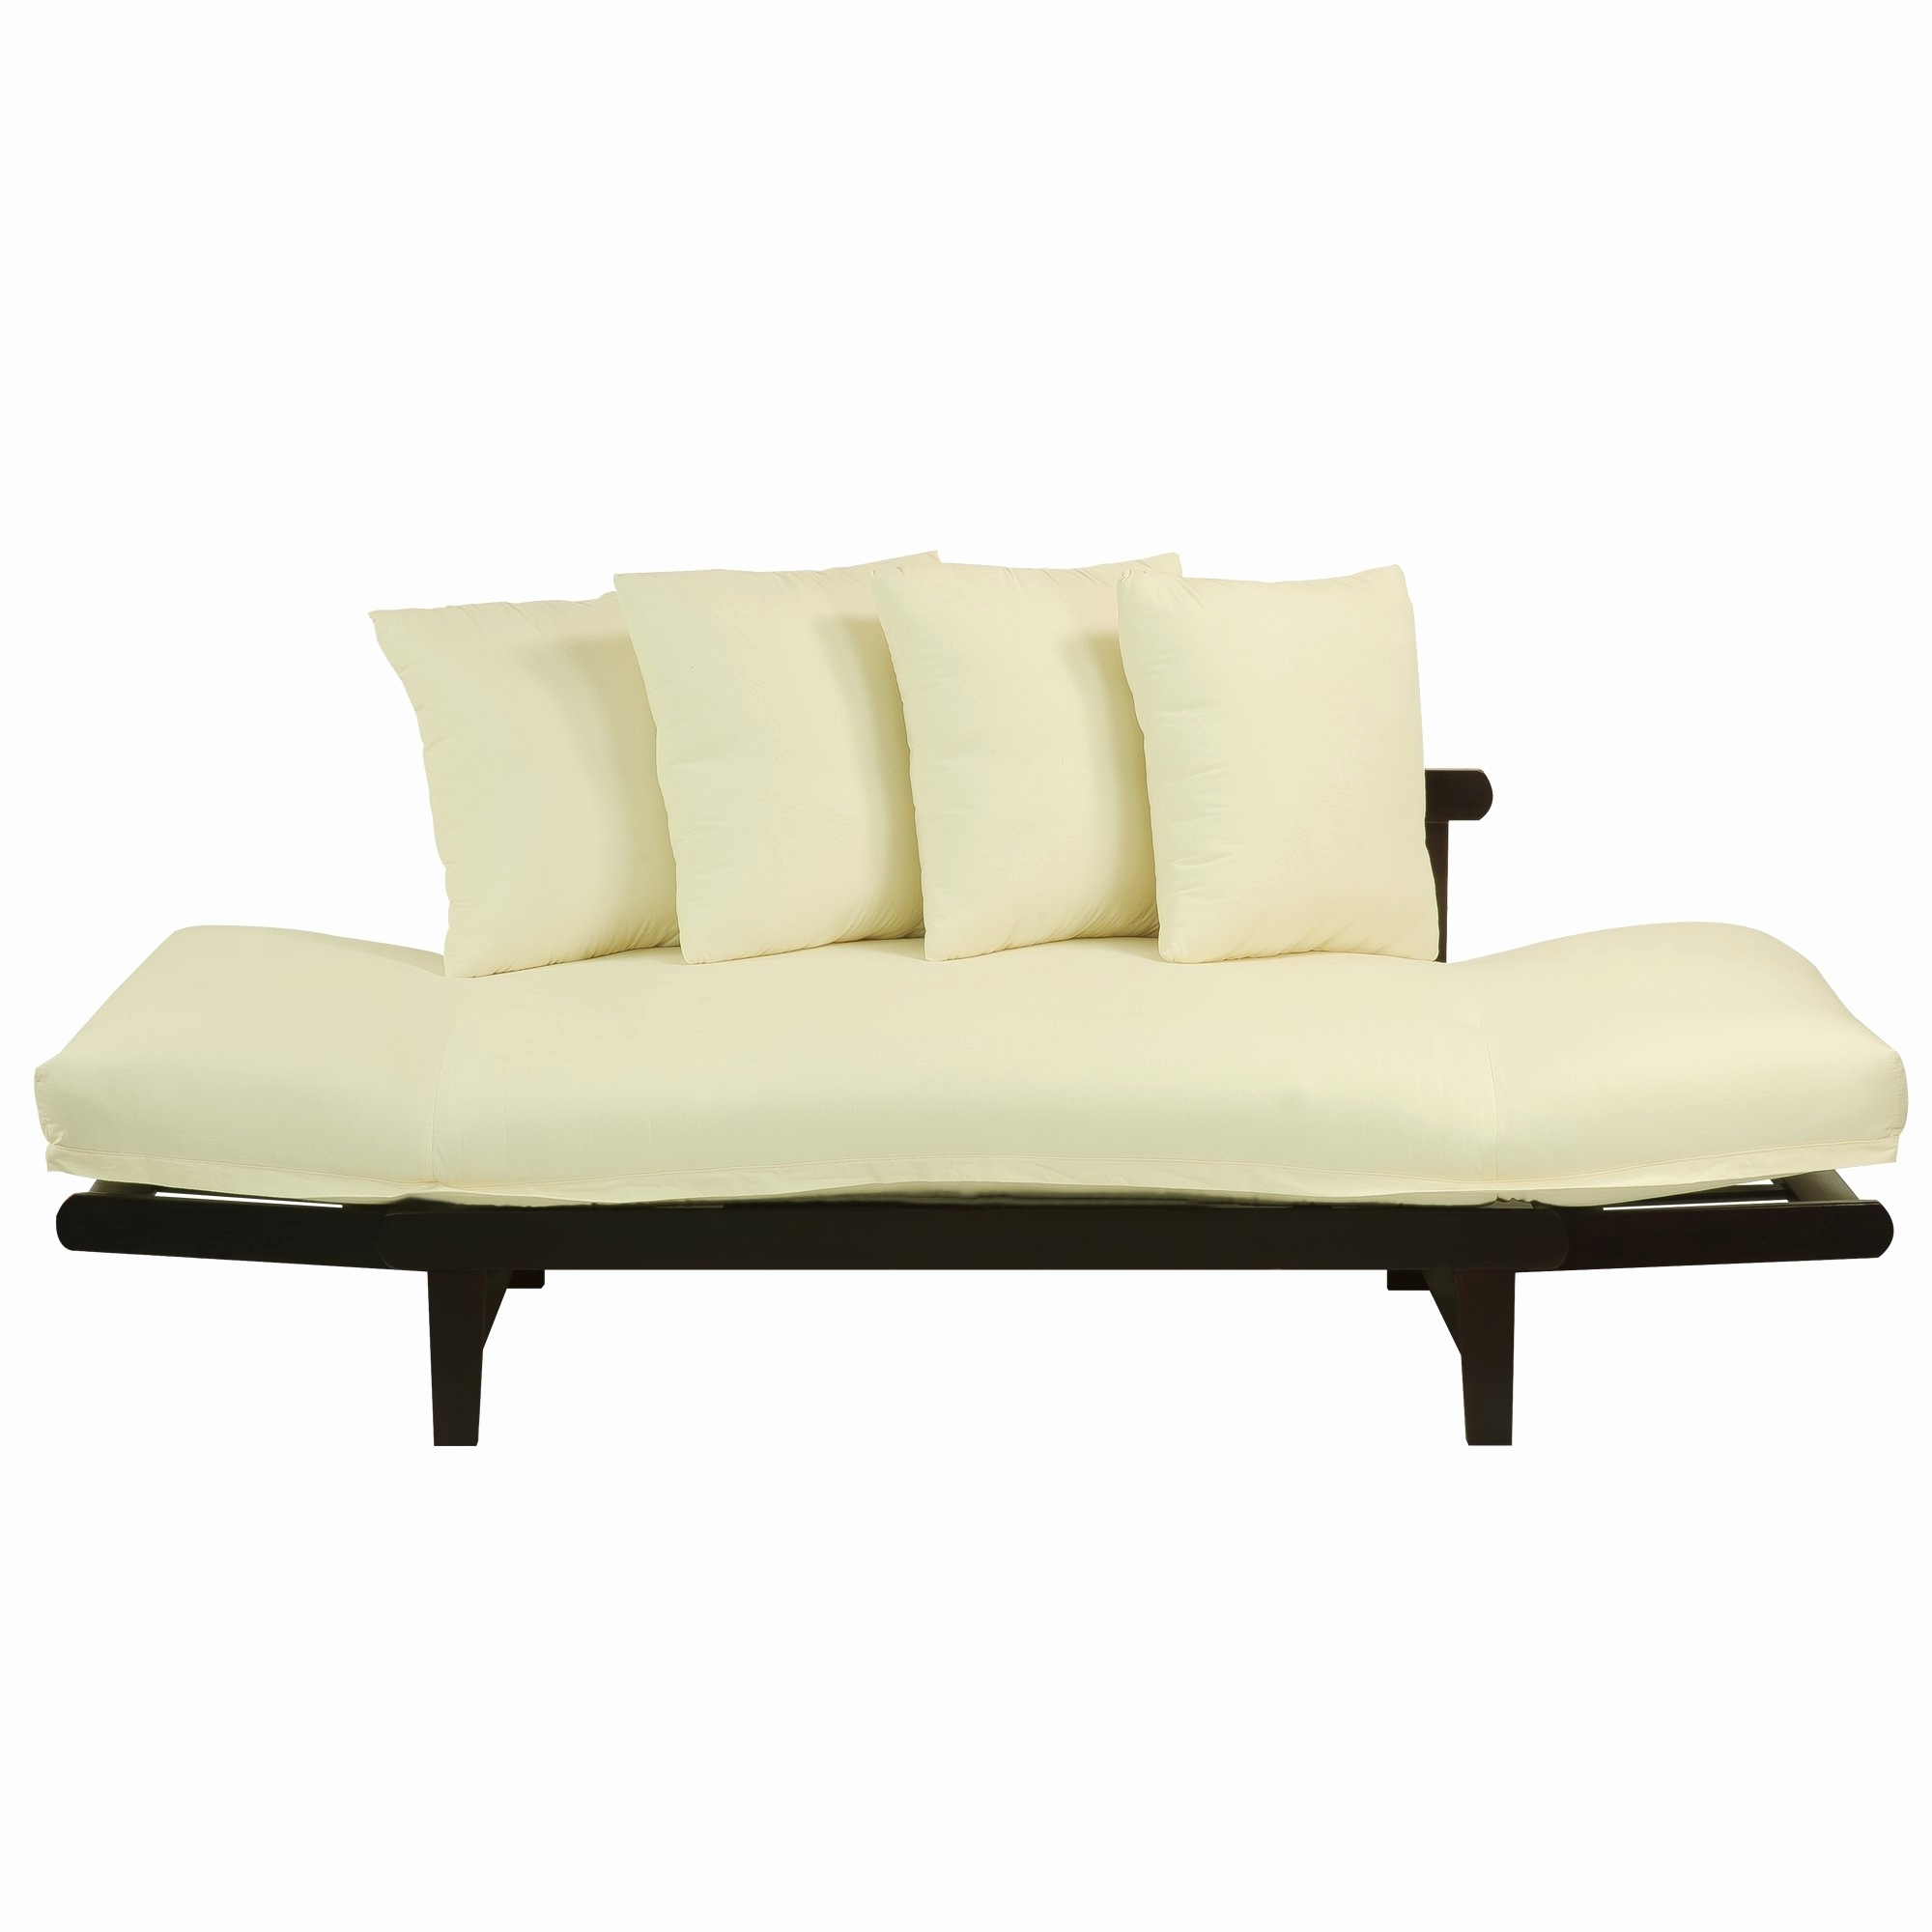 Famous Chaise Lounge Sleepers Inside Luxury Full Size Sleeper Sofa 2018 – Couches And Sofas Ideas (View 9 of 15)